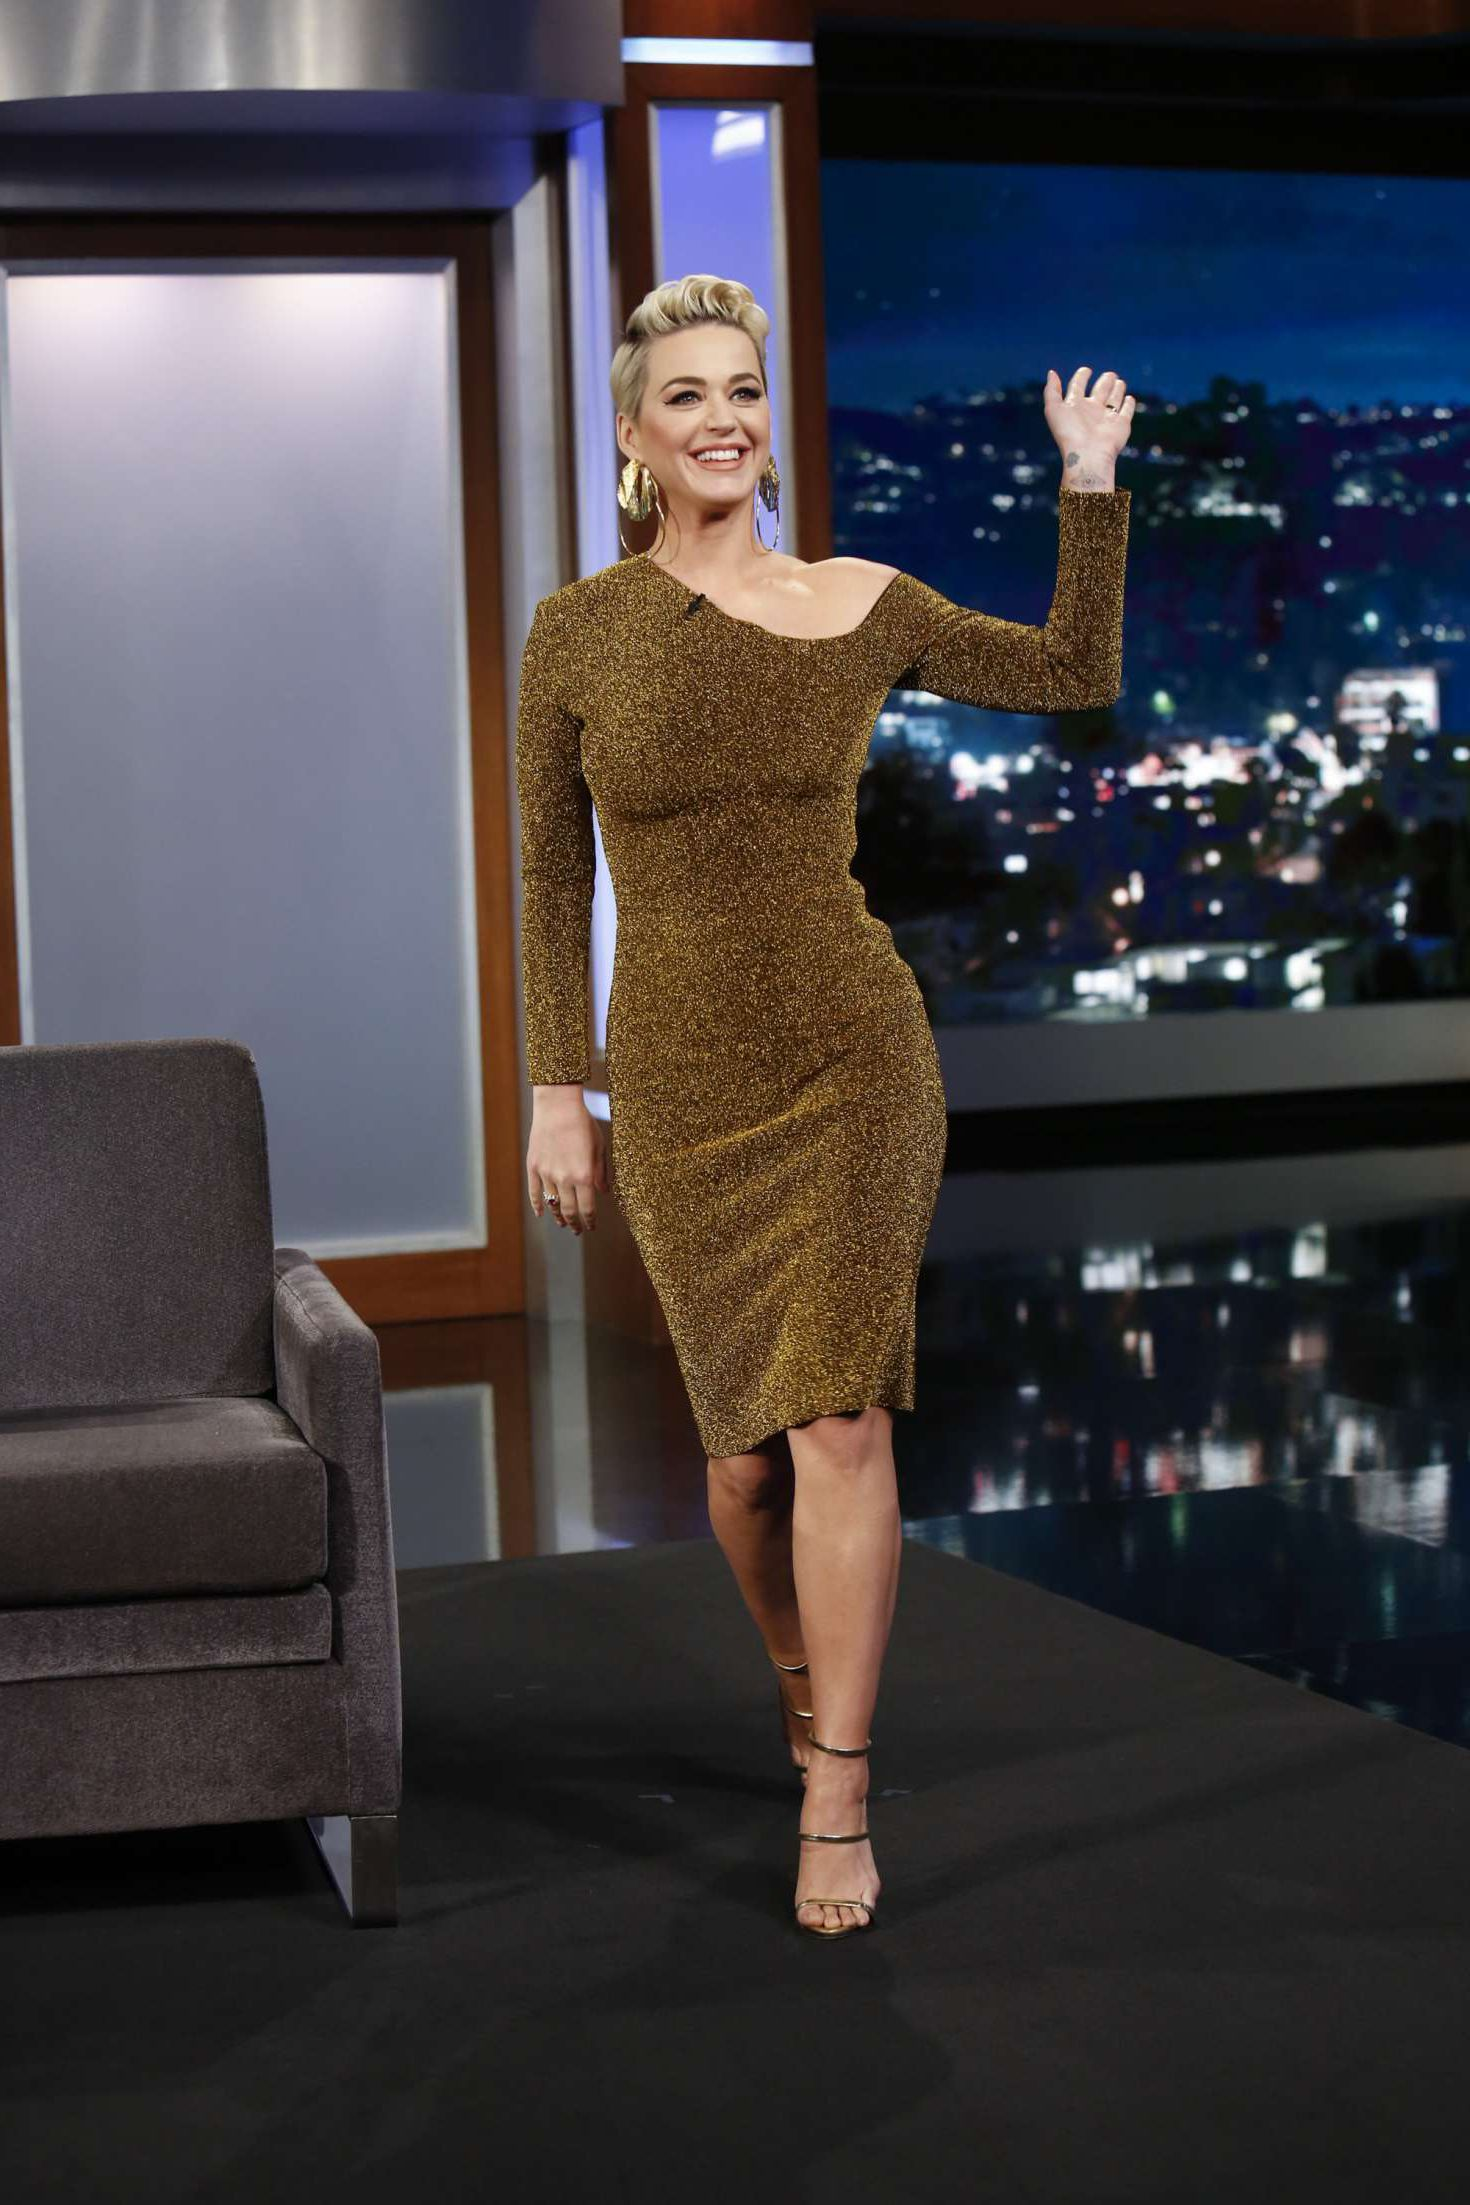 Katy Perry greets all at the 'Jimmy Kimmel Live' in Los Angeles, 2019